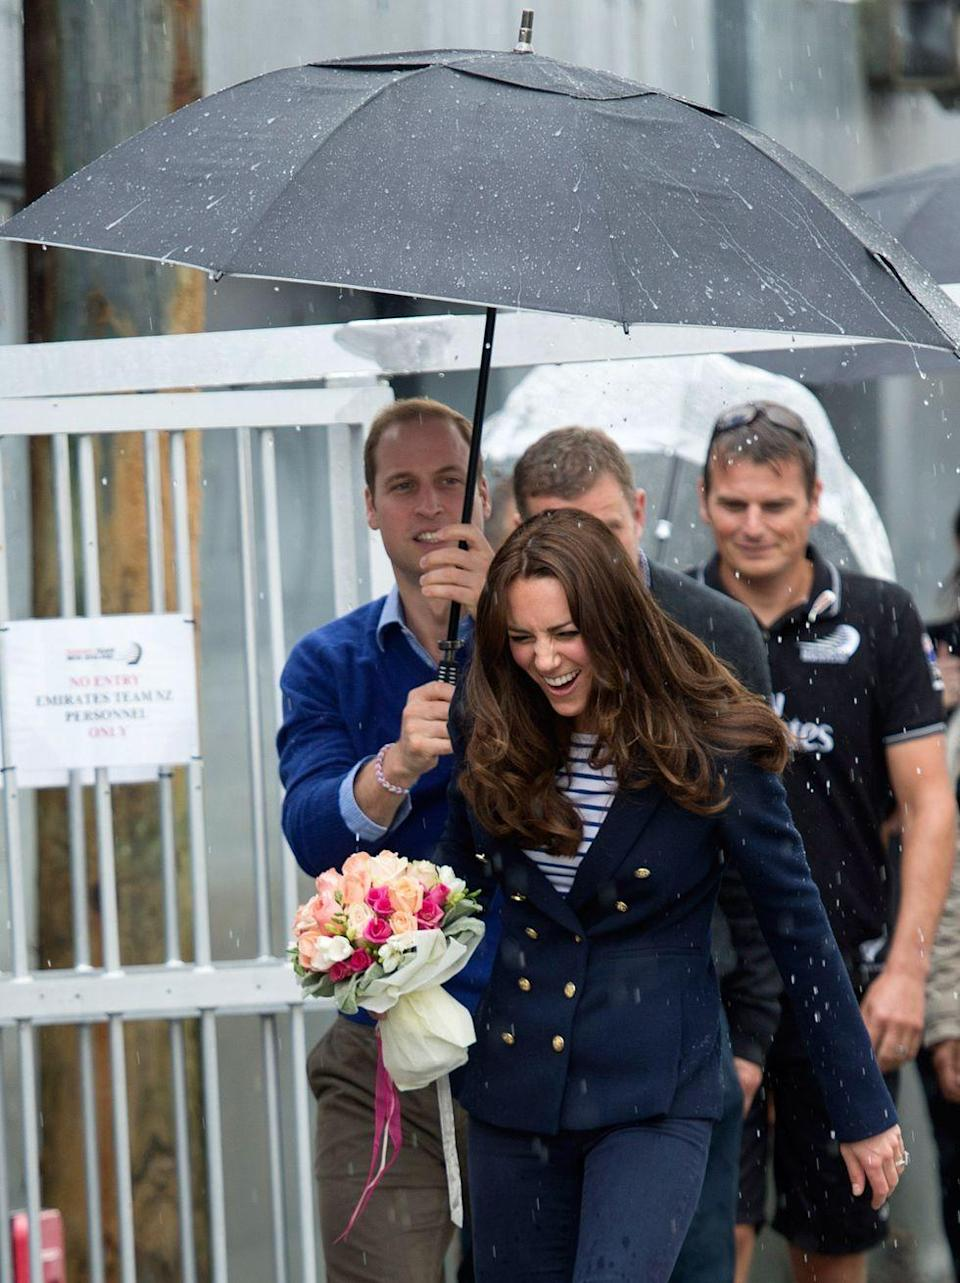 <p>Despite his best efforts, Will seems unable to shield his wife from the elements.<br></p>